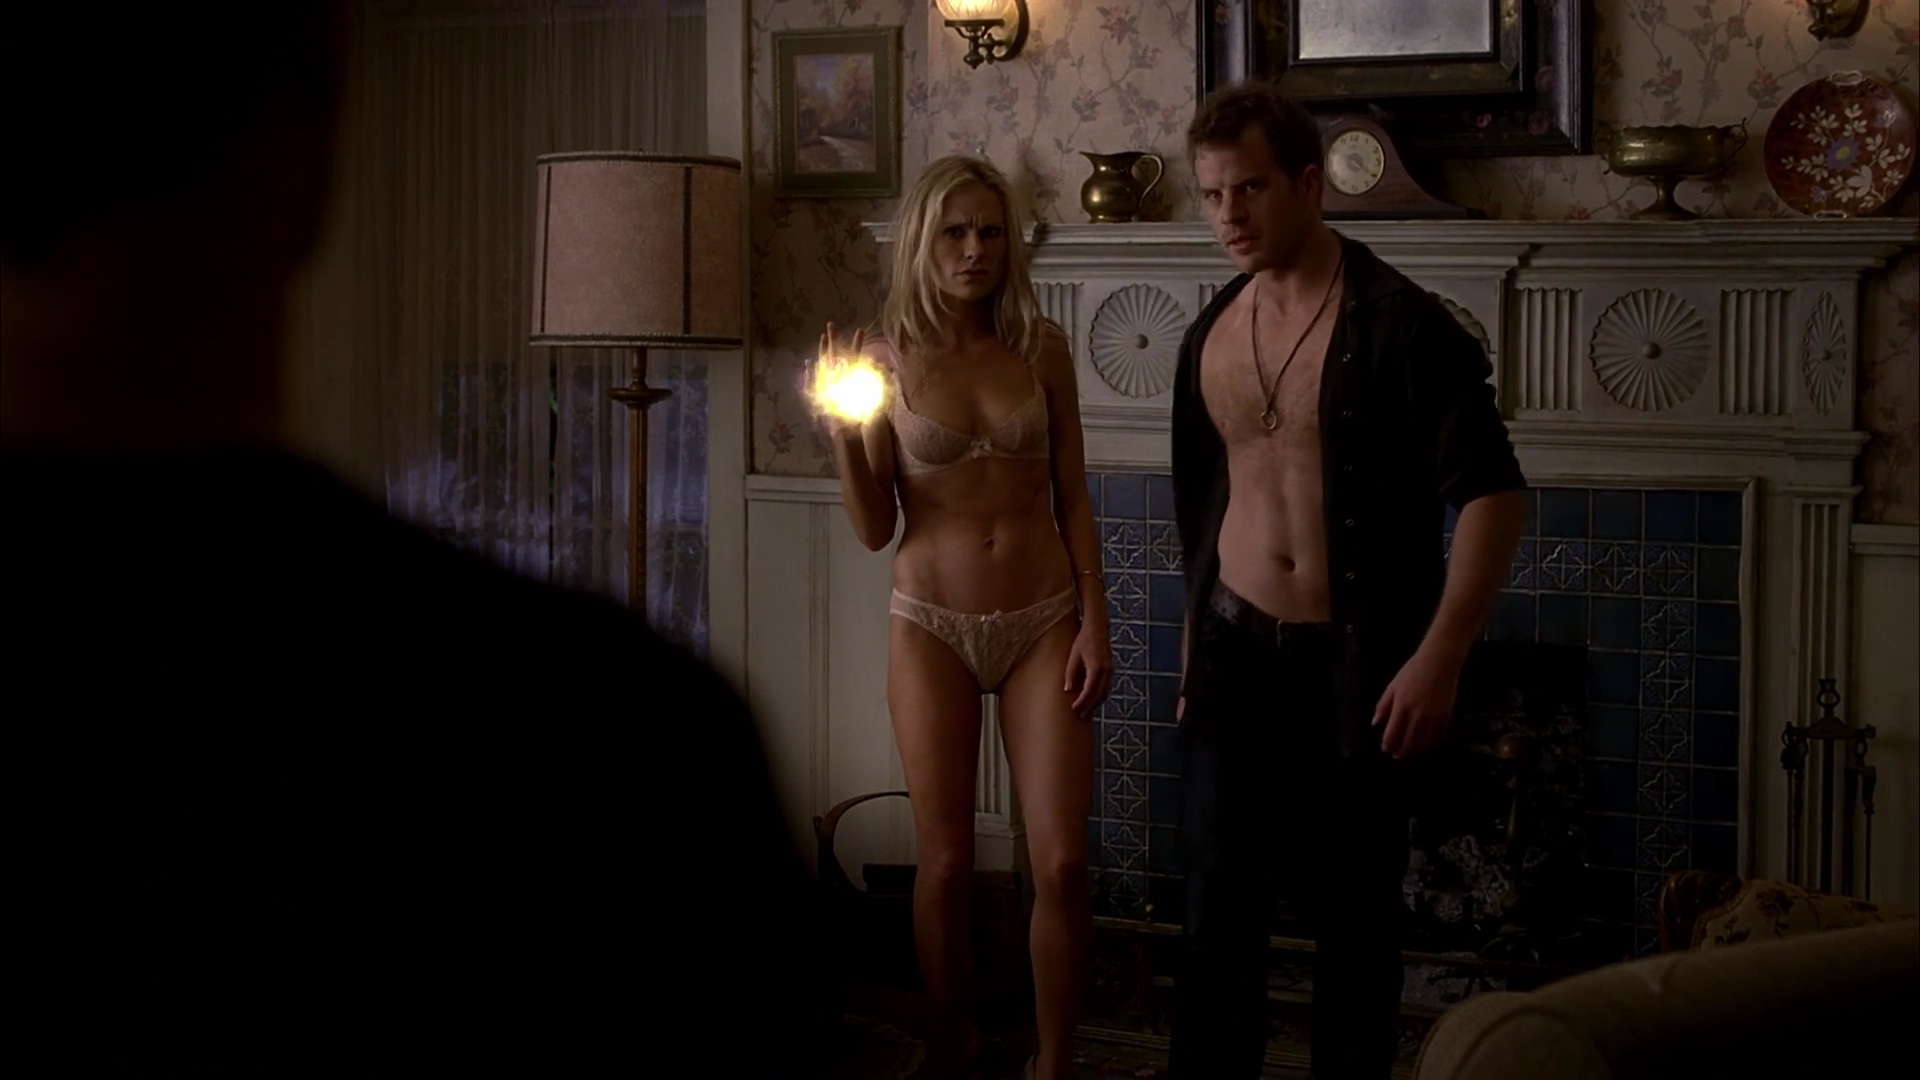 Sookie stackhouse nude pictures will not